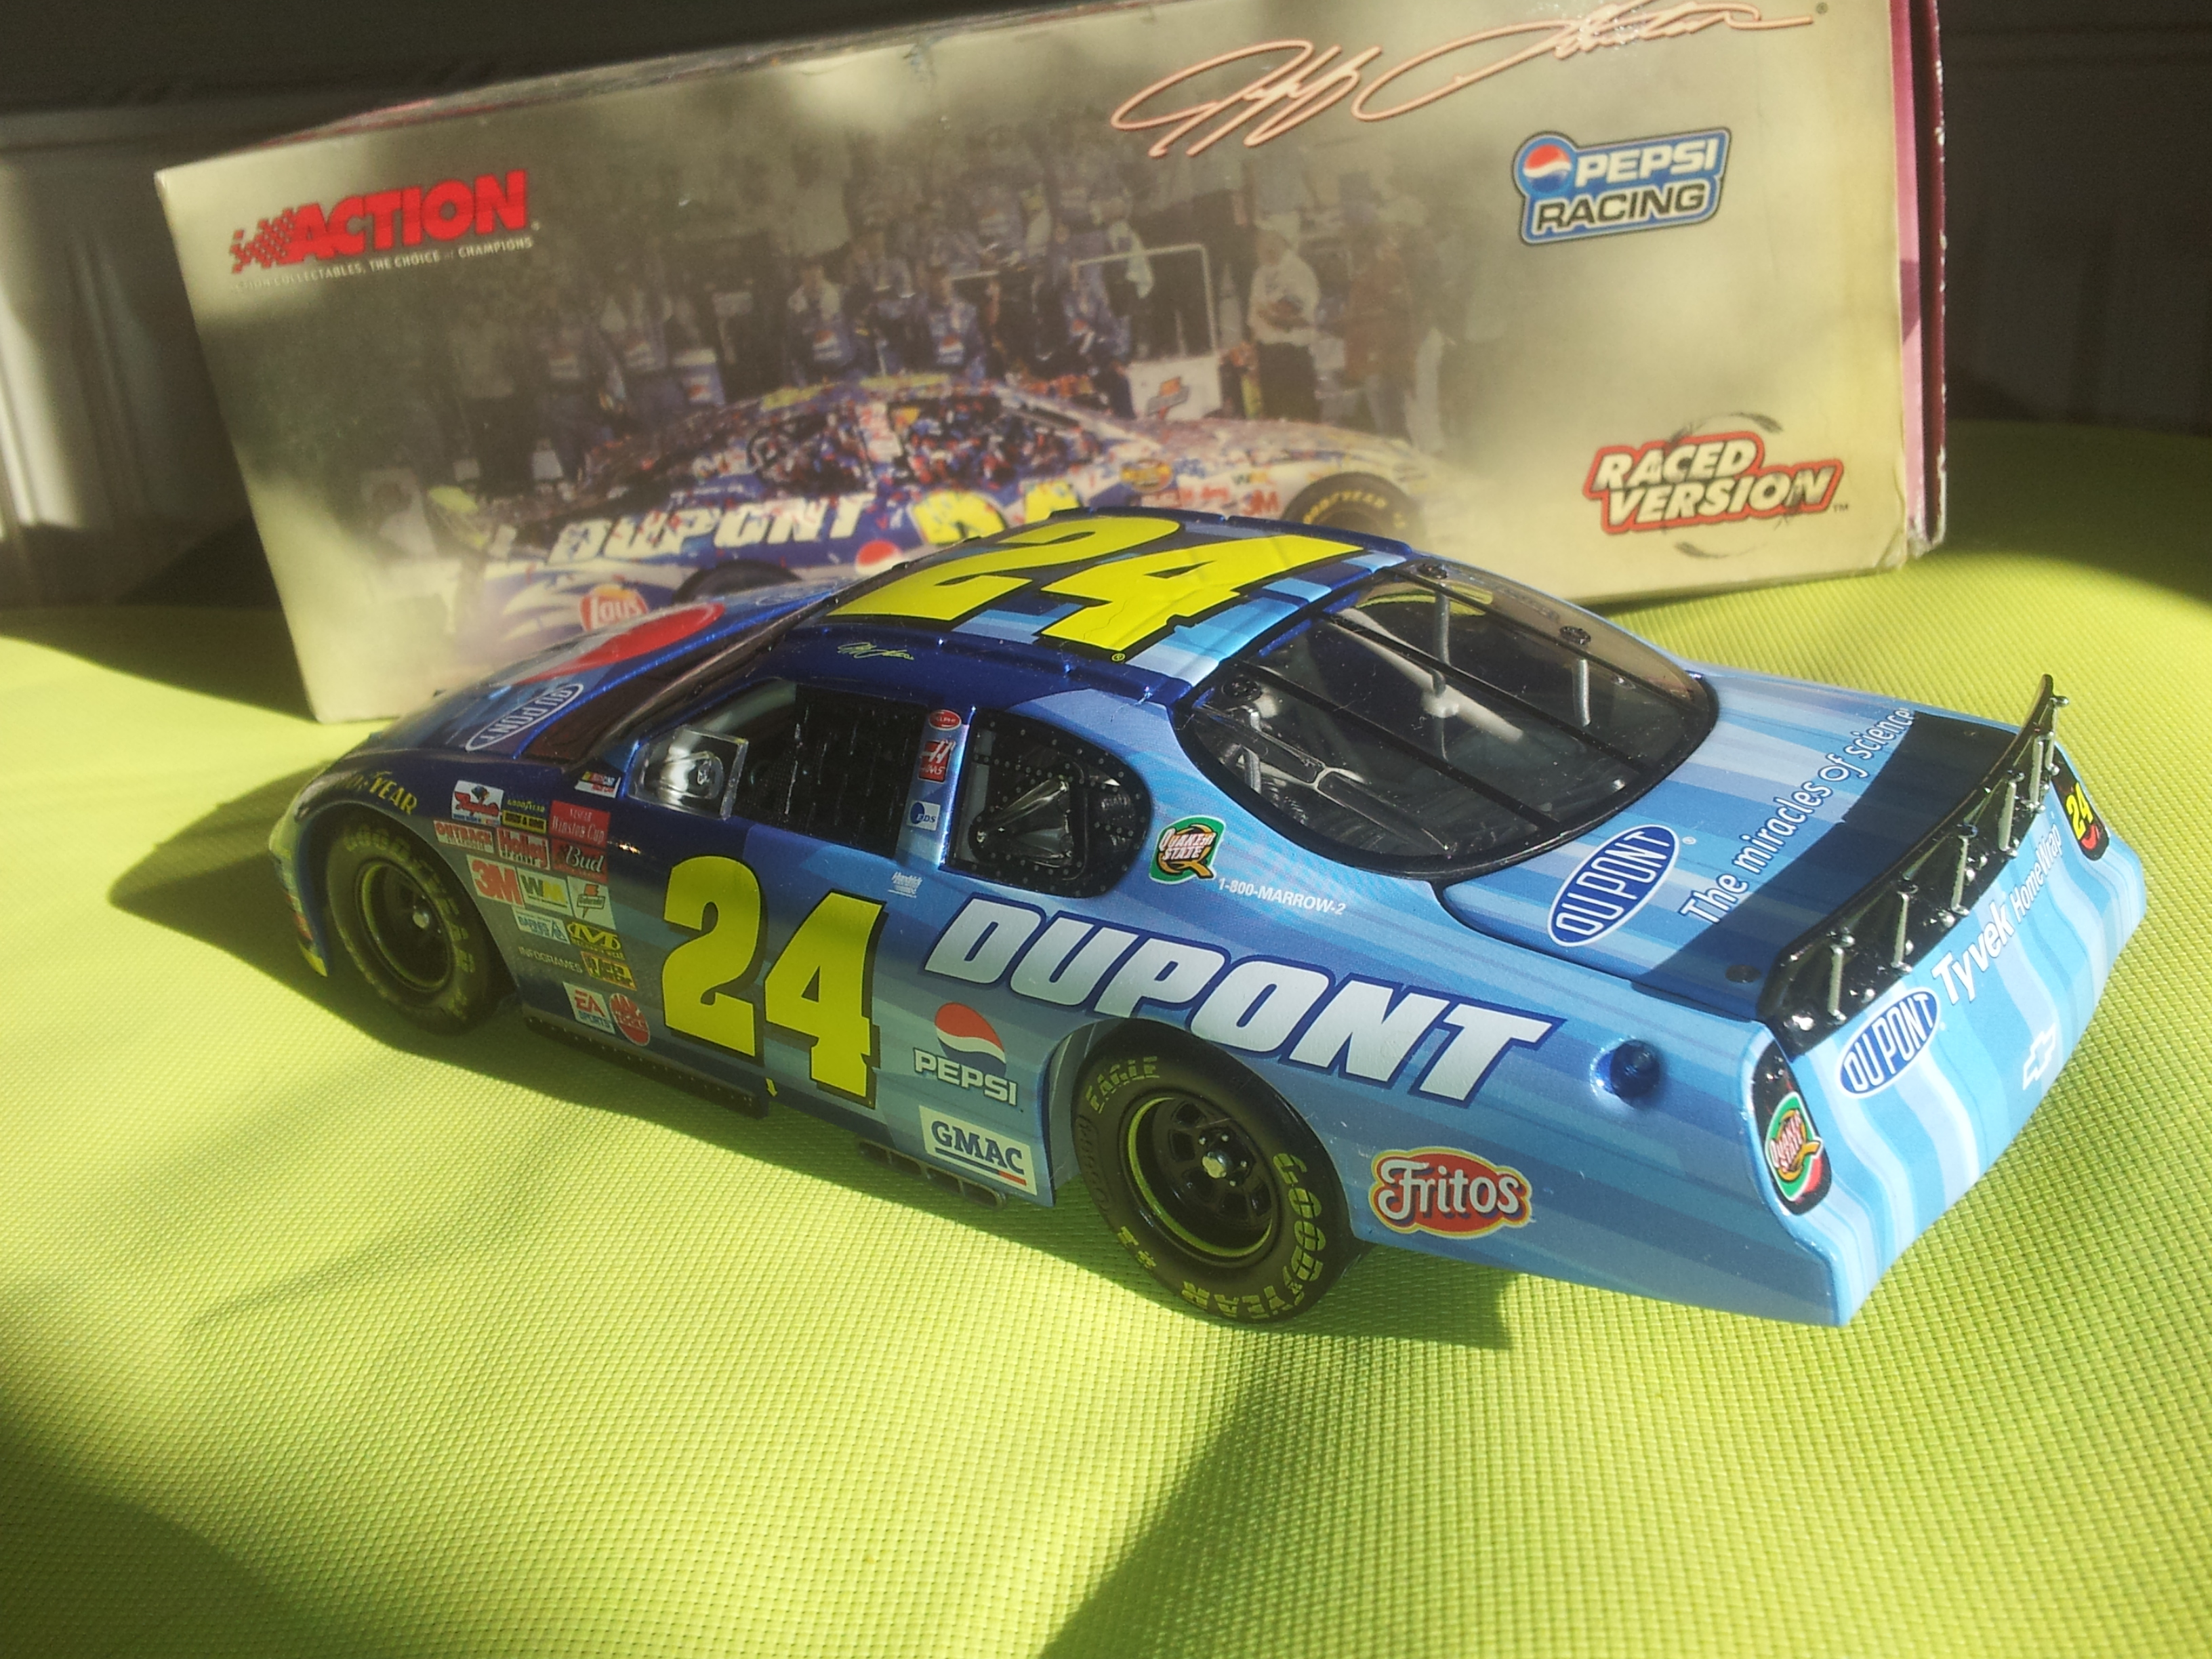 Nascar & Jeff Gordon's tribute 72866320150207132731